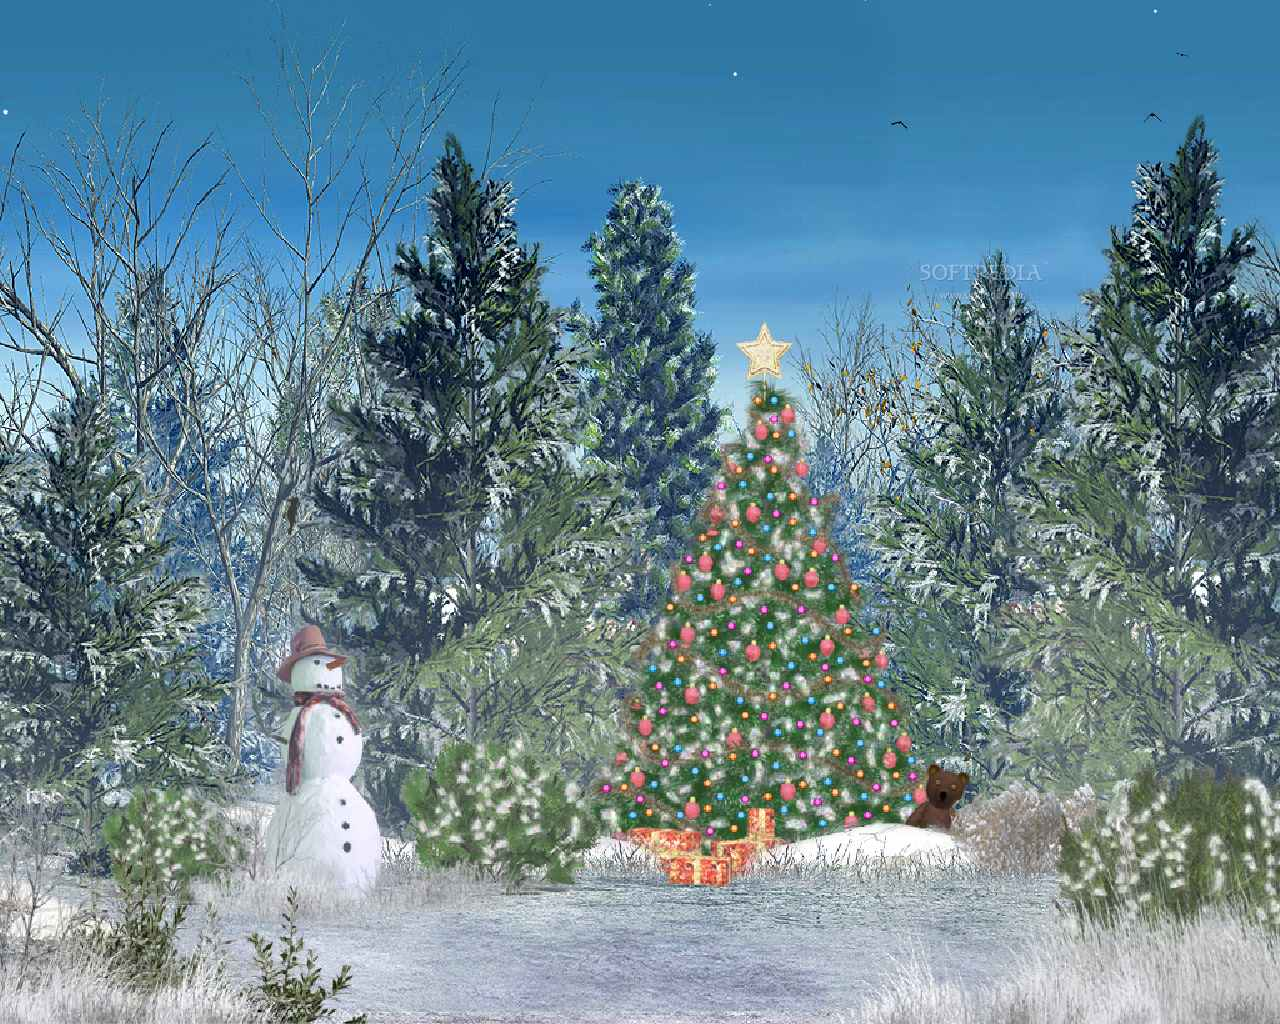 animated christmas desktop background   Desktop Wallpaper 1280x1024